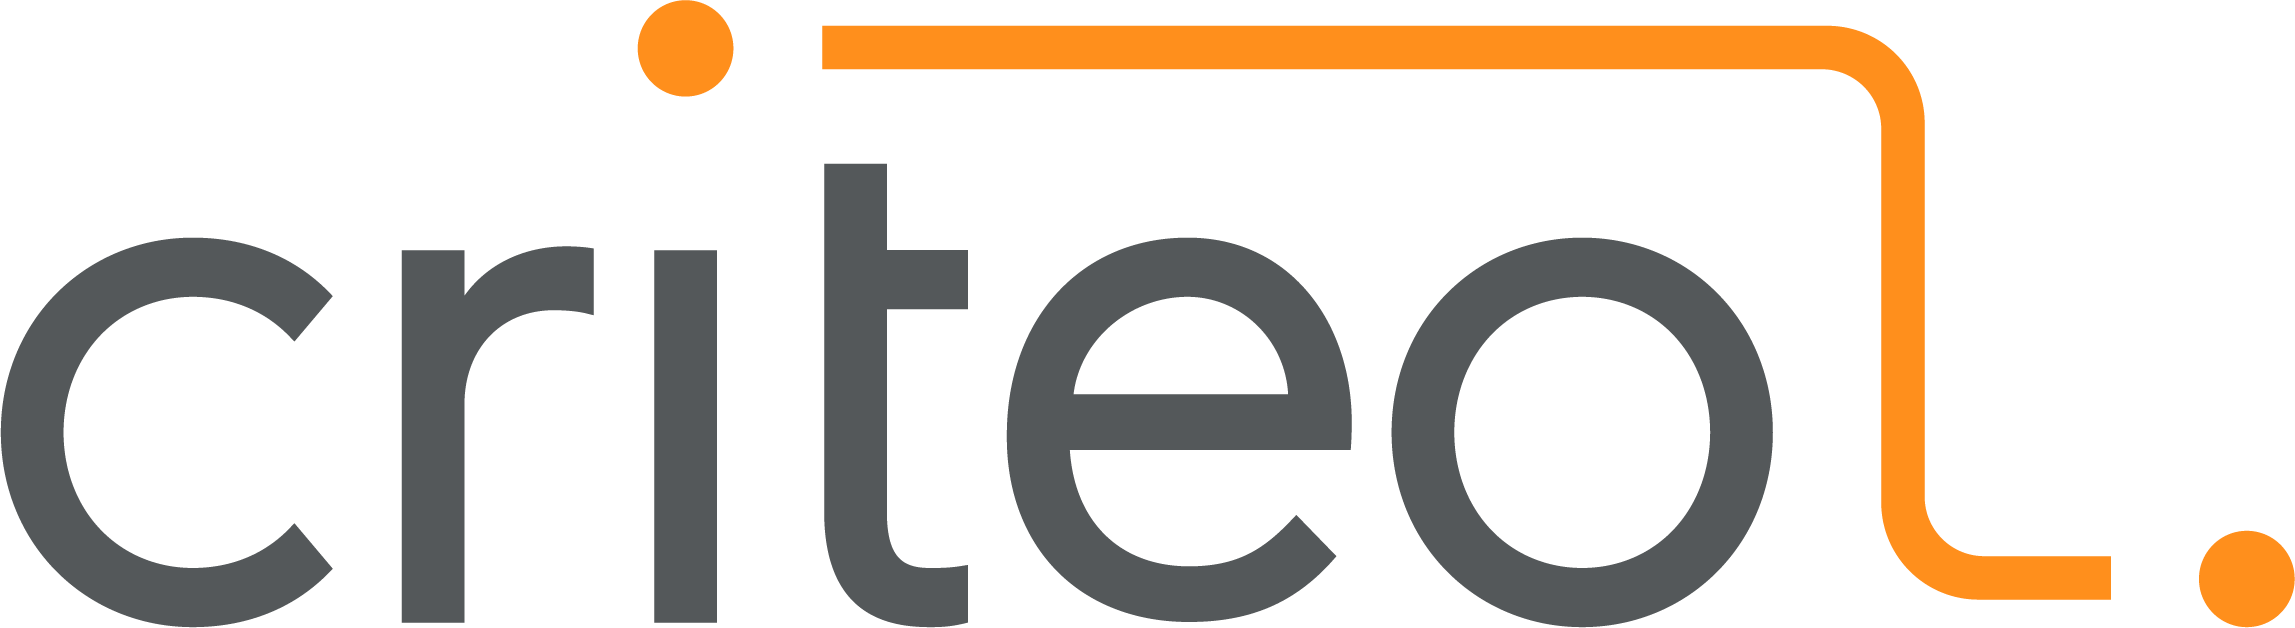 criteo-png.png